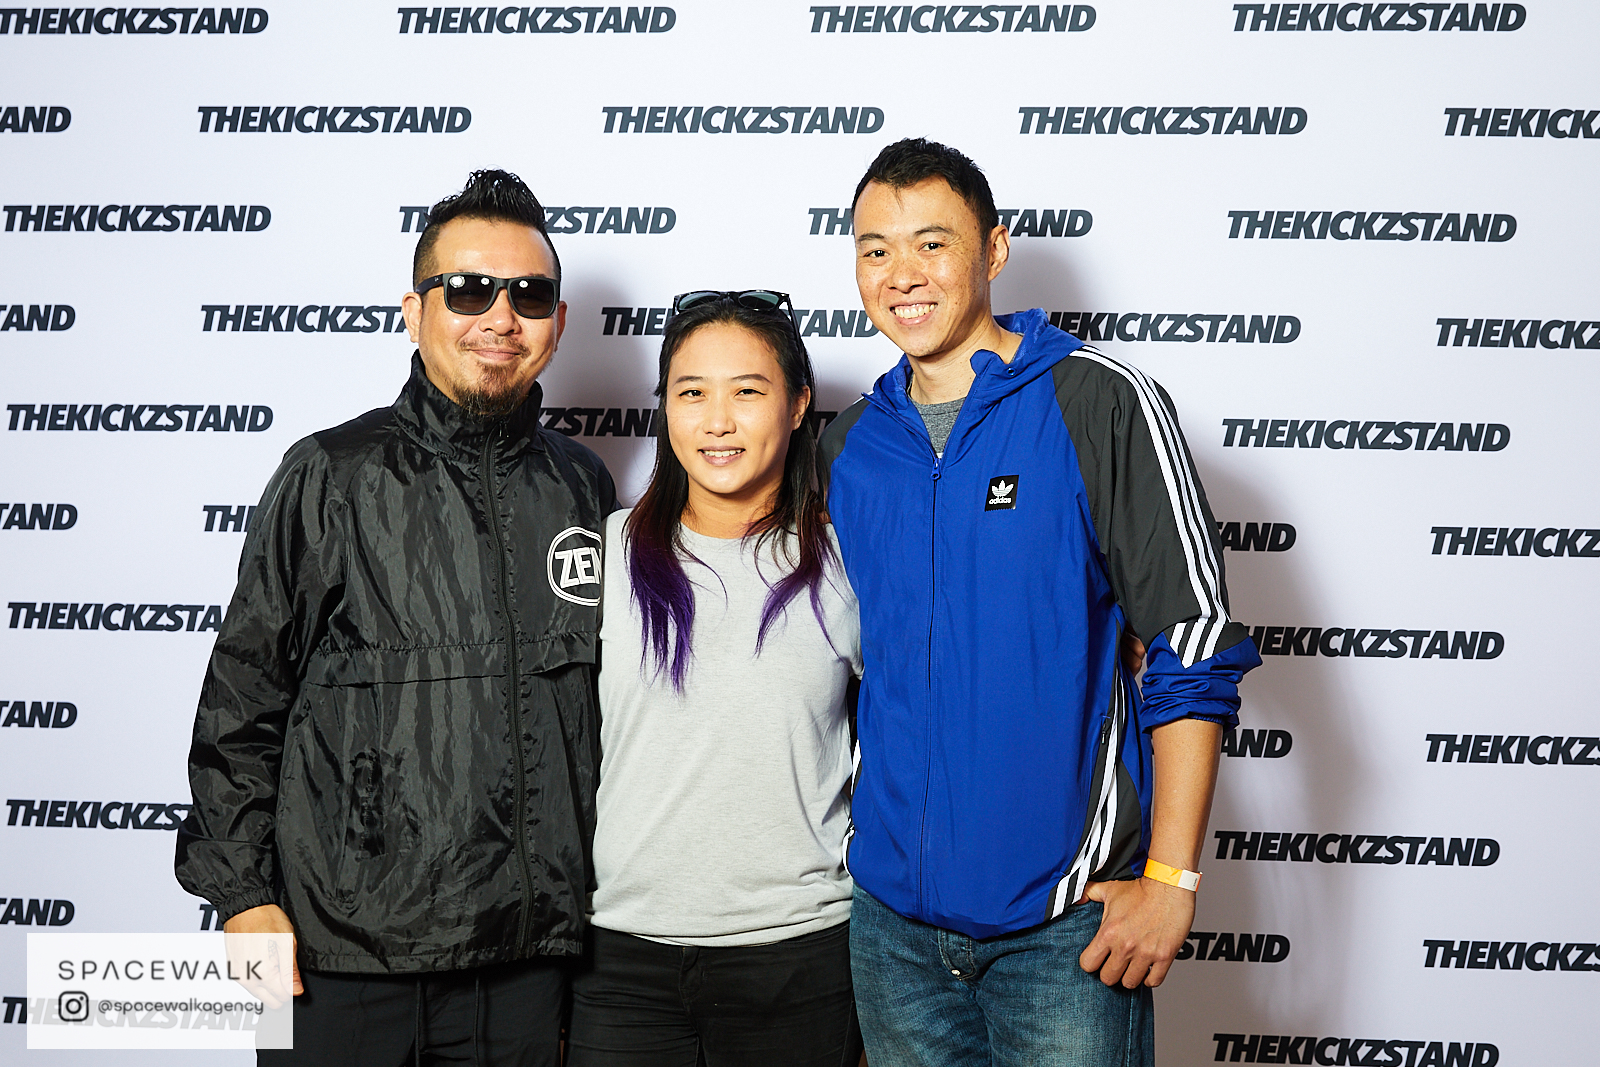 KICKZSTAND_BOOTH_050